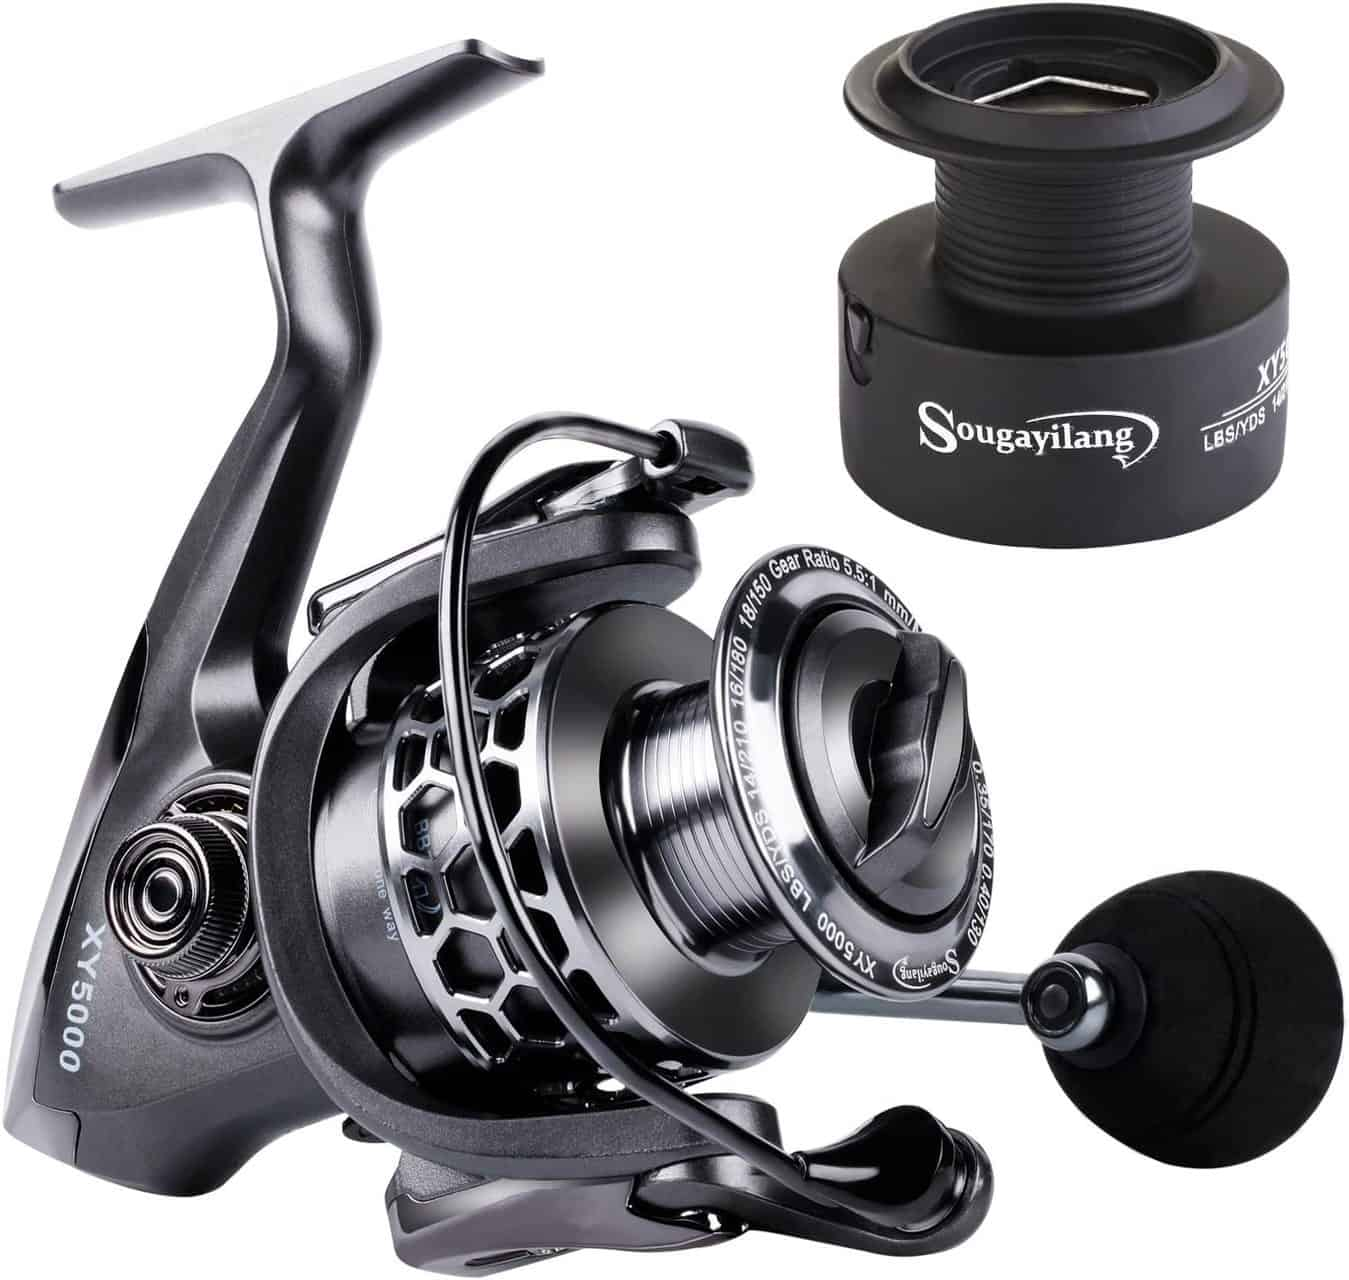 Fishing Spinning Reel by Sougayilang